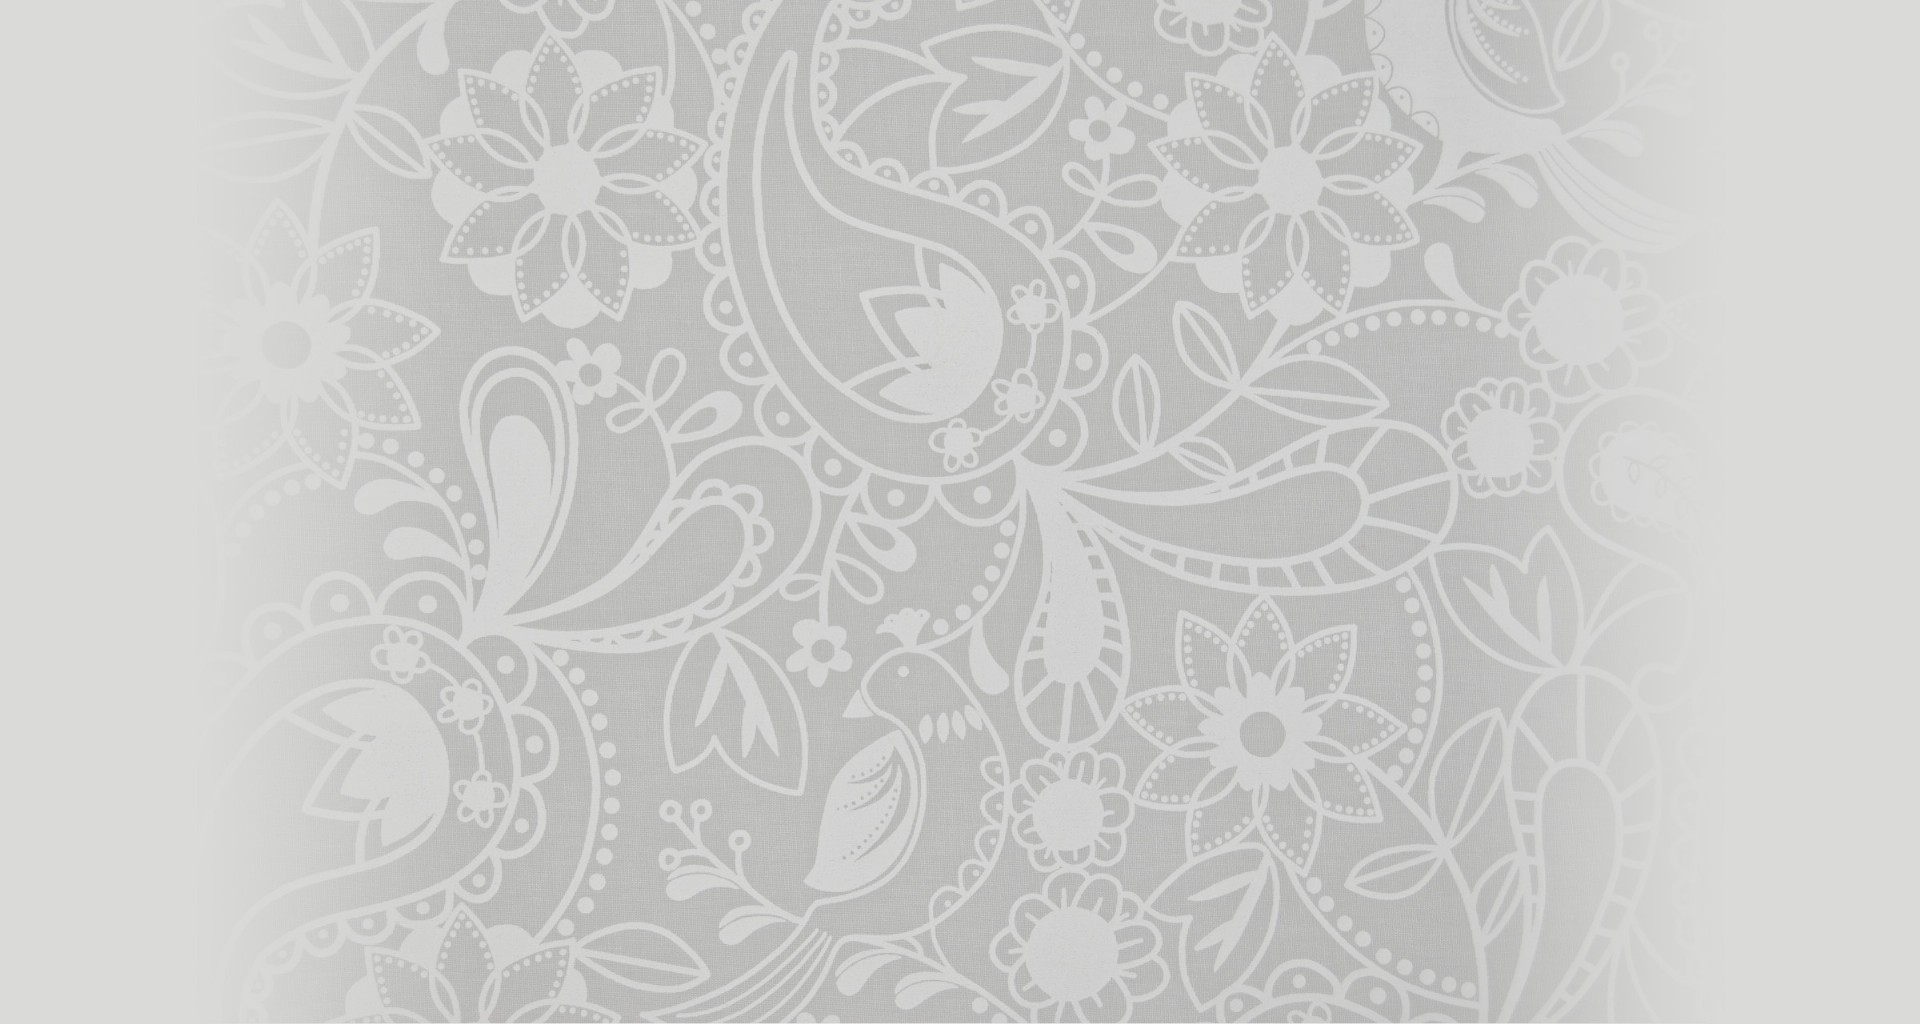 flowerpattern_5_0_scaled_LIGHTBOX.jpg